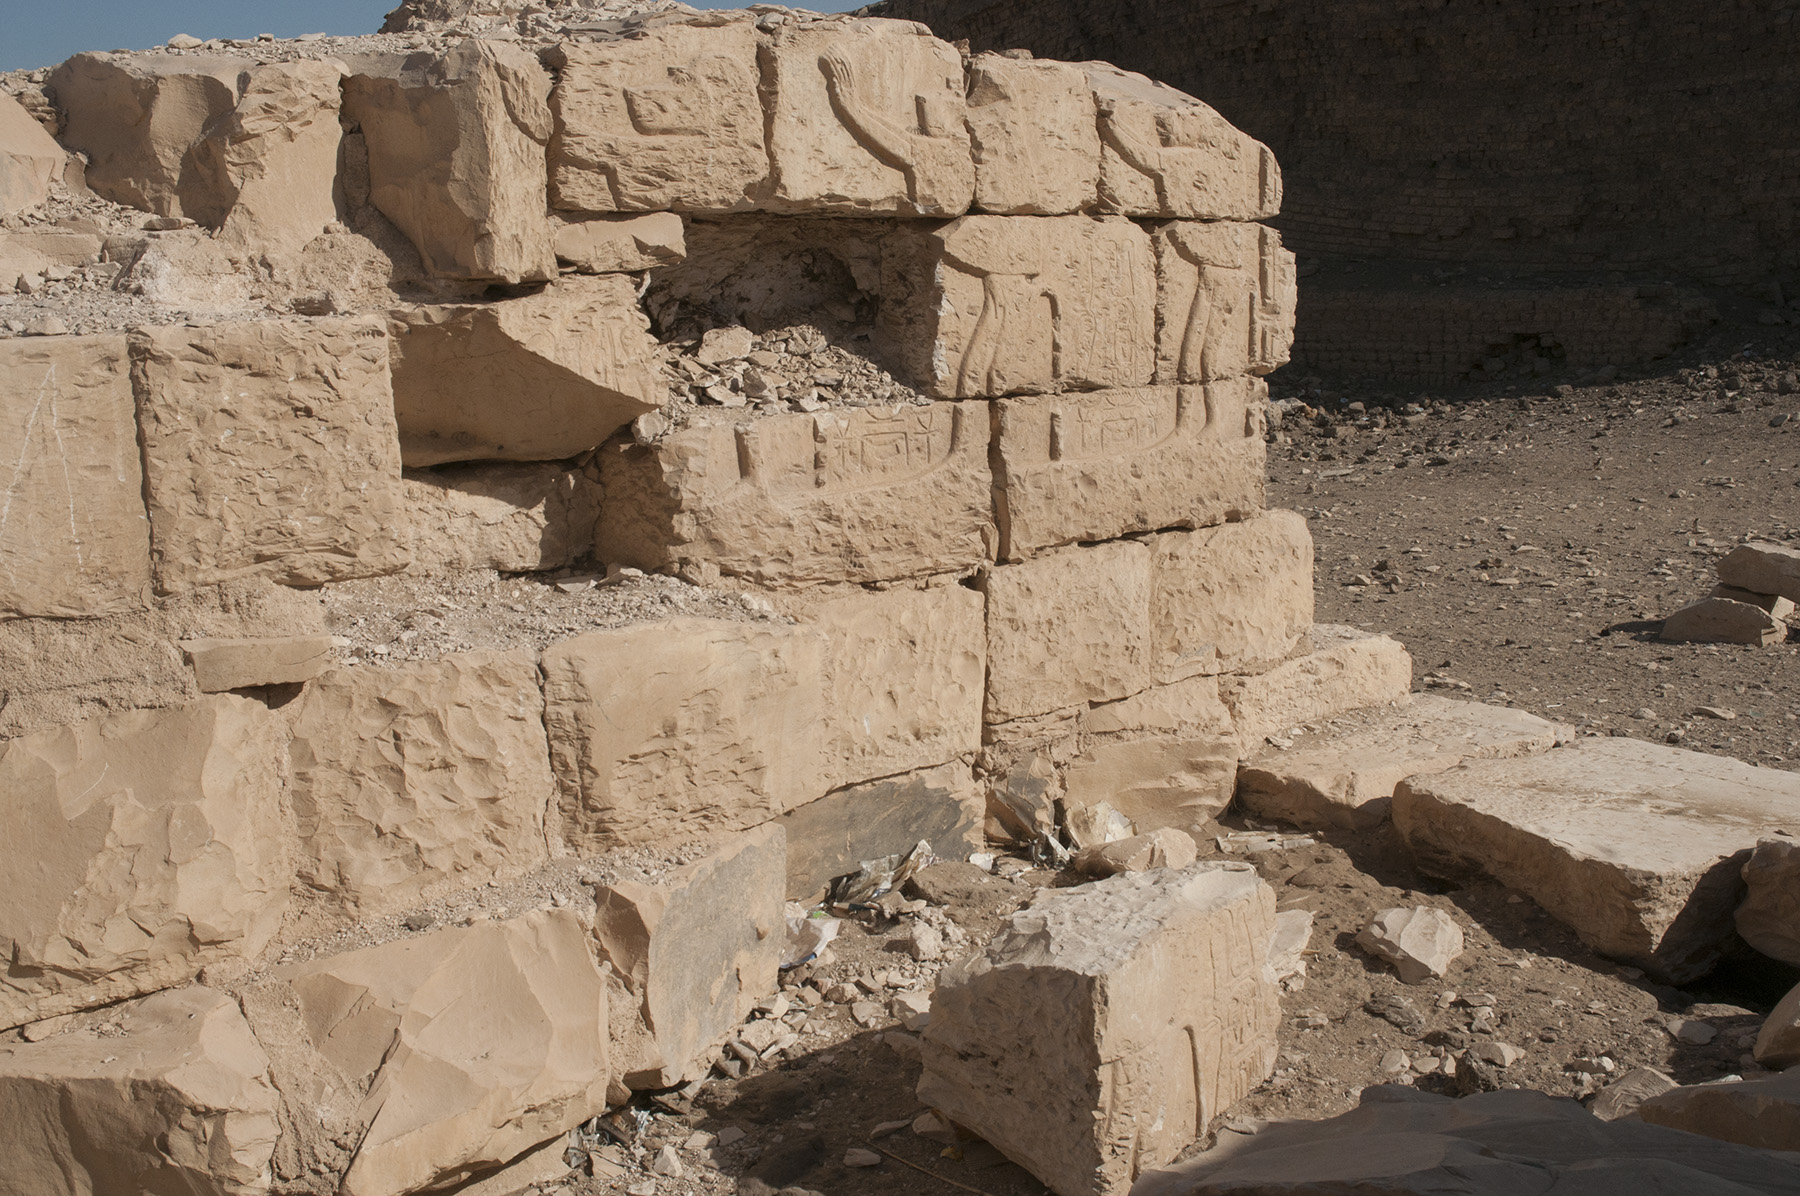 Fig. 12. Detail of a relief block pried out of the northern wall of the central passageway along the temple's main axis, where it lay discarded by vandals until it could be moved into secure storage in 2018, now awaiting its future restoration to the wall. Photo: Matthew Adams © North Abydos Expedition 2018